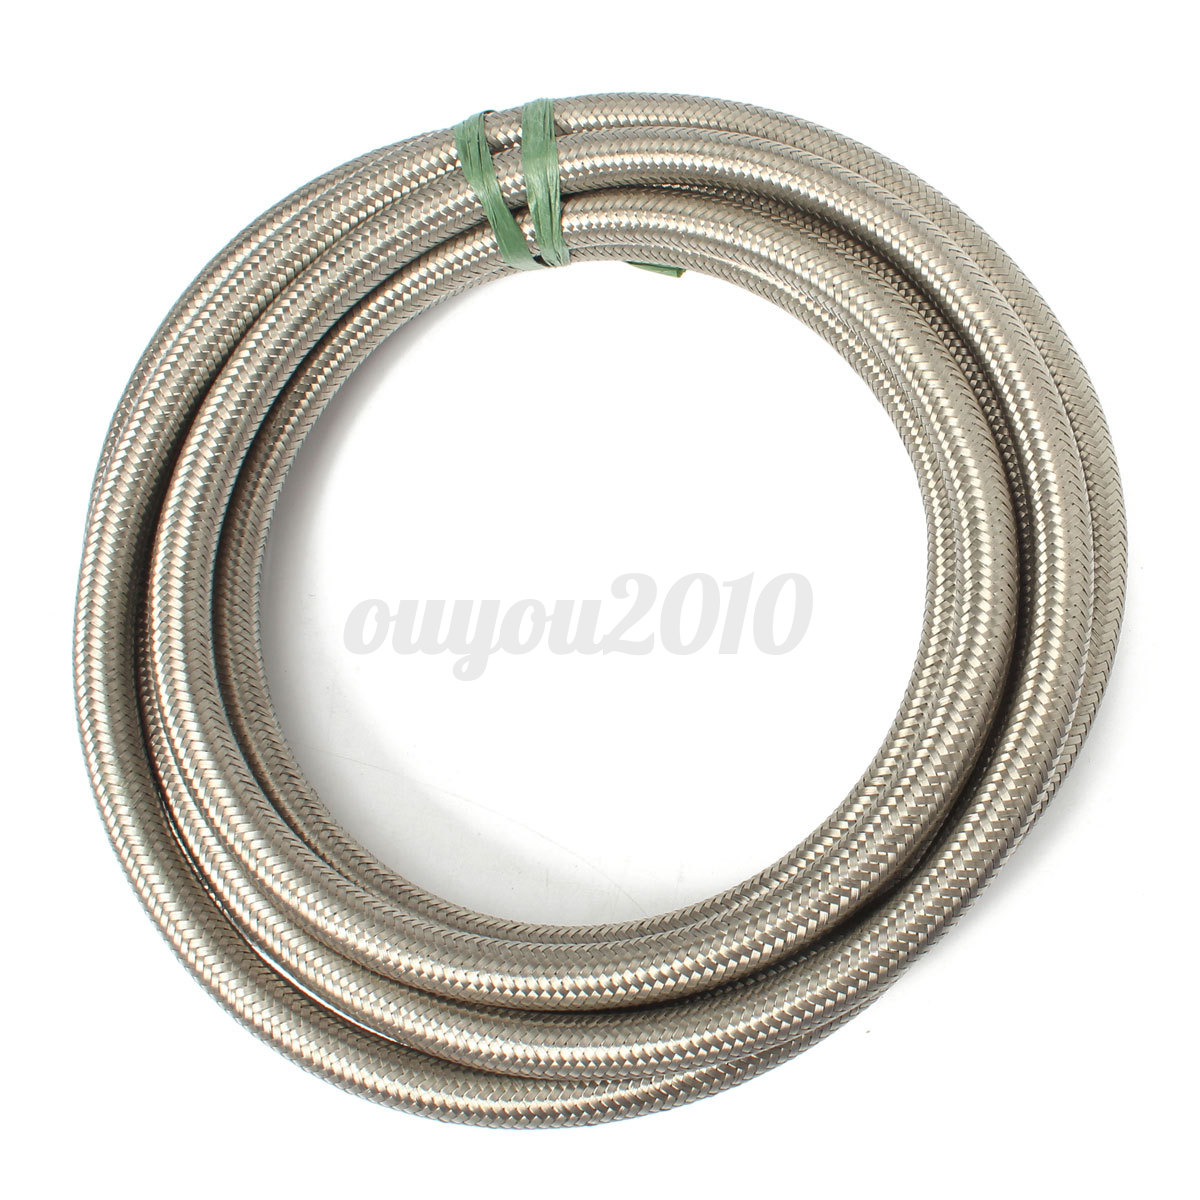 An stainless steel braided oil fuel line fitting